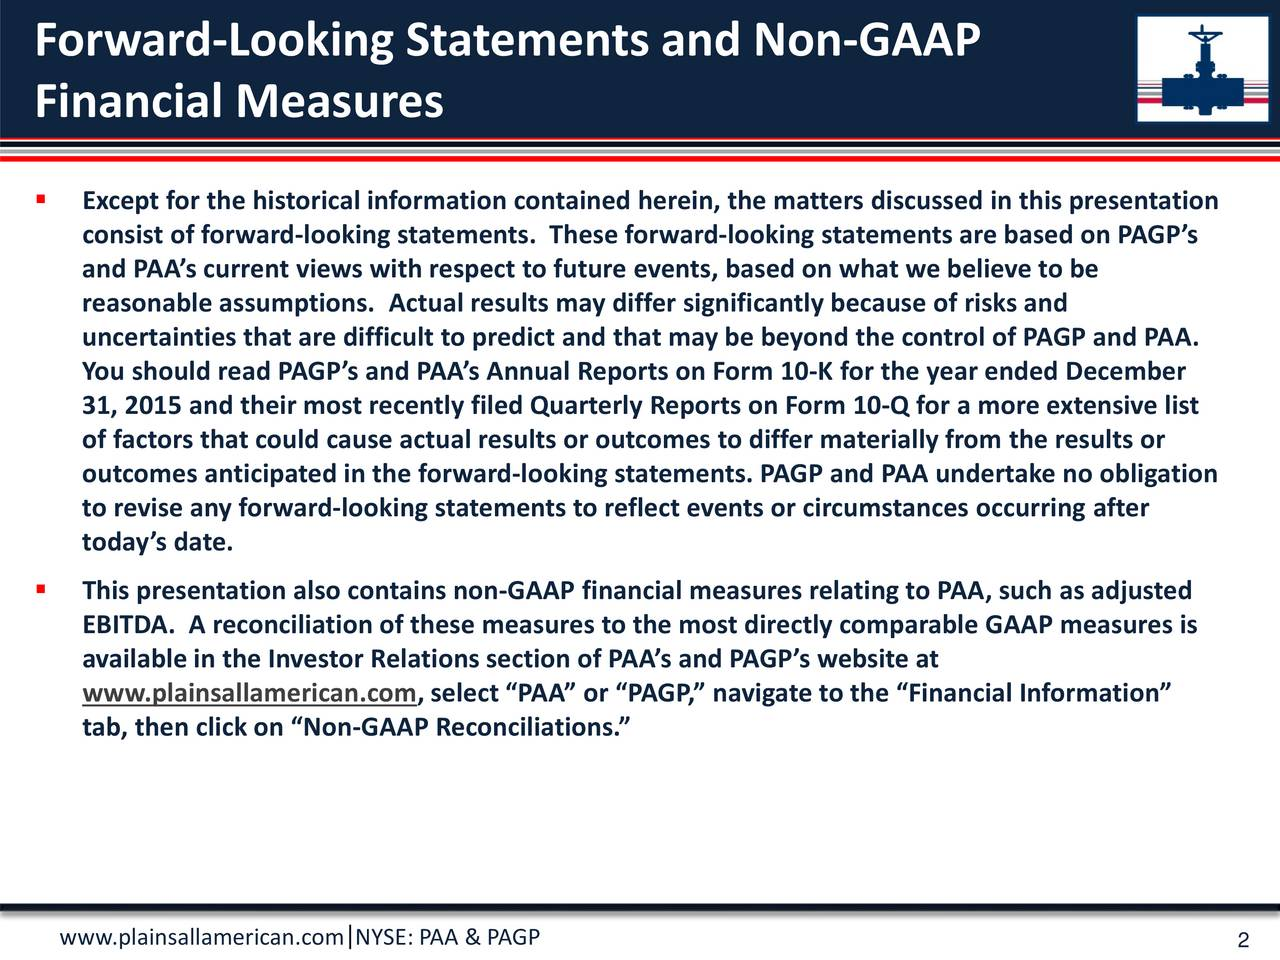 Financial Measures Except for the historical information contained herein, the matters discussed in this presentation consist of forward-looking statements. These forward-looking statements are based on PAGPs and PAAs current views with respect to future events, based on what we believe to be reasonable assumptions. Actual results may differ significantly because of risks and uncertainties that are difficult to predict and that may be beyond the control of PAGP andPAA. Youshould read PAGPs and PAAs Annual Reports on Form 10-K for the year ended December 31, 2015 and their most recently filed Quarterly Reports on Form 10-Q for a more extensive list of factors that could cause actual results or outcomes to differ materially from the results or outcomes anticipated in the forward-looking statements. PAGP and PAA undertake no obligation to revise any forward-looking statements to reflect events or circumstances occurring after todays date. This presentation also contains non-GAAP financial measures relating to PAA, such as adjusted EBITDA. A reconciliation of these measures to the most directly comparable GAAP measures is available in the Investor Relations section of PAAs and PAGPs website at www.plainsallamerican.com, select PAA or PAGP, navigate to the Financial Information tab, then click on Non-GAAP Reconciliations. www.plainsallamerican.com NYSE: PAA & PAGP